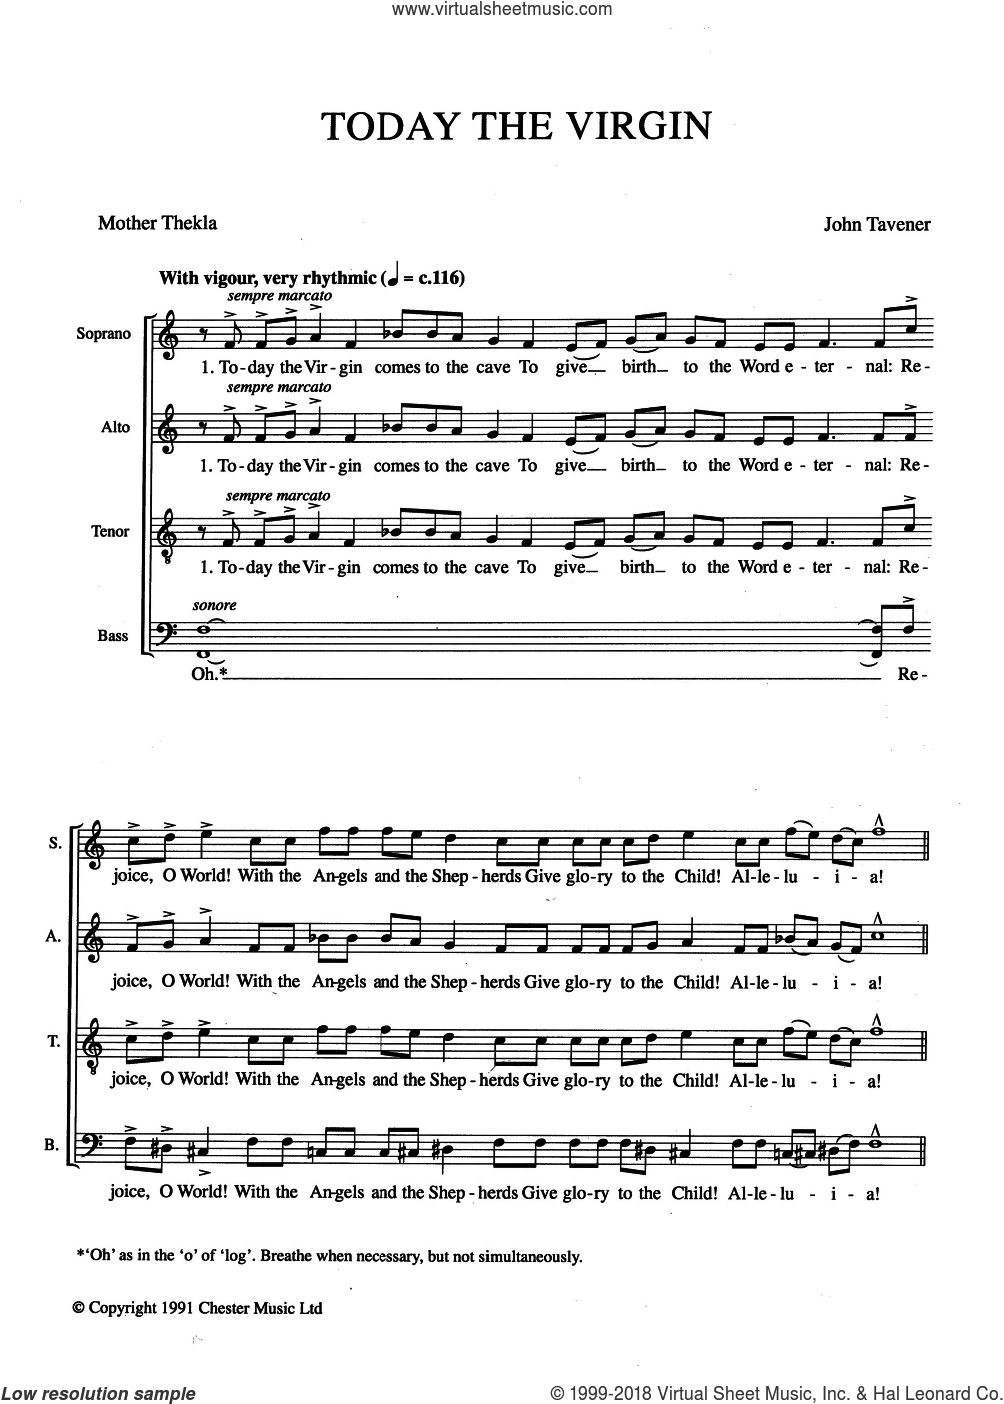 Today The Virgin sheet music for choir by Mother Thekla and John Tavener. Score Image Preview.